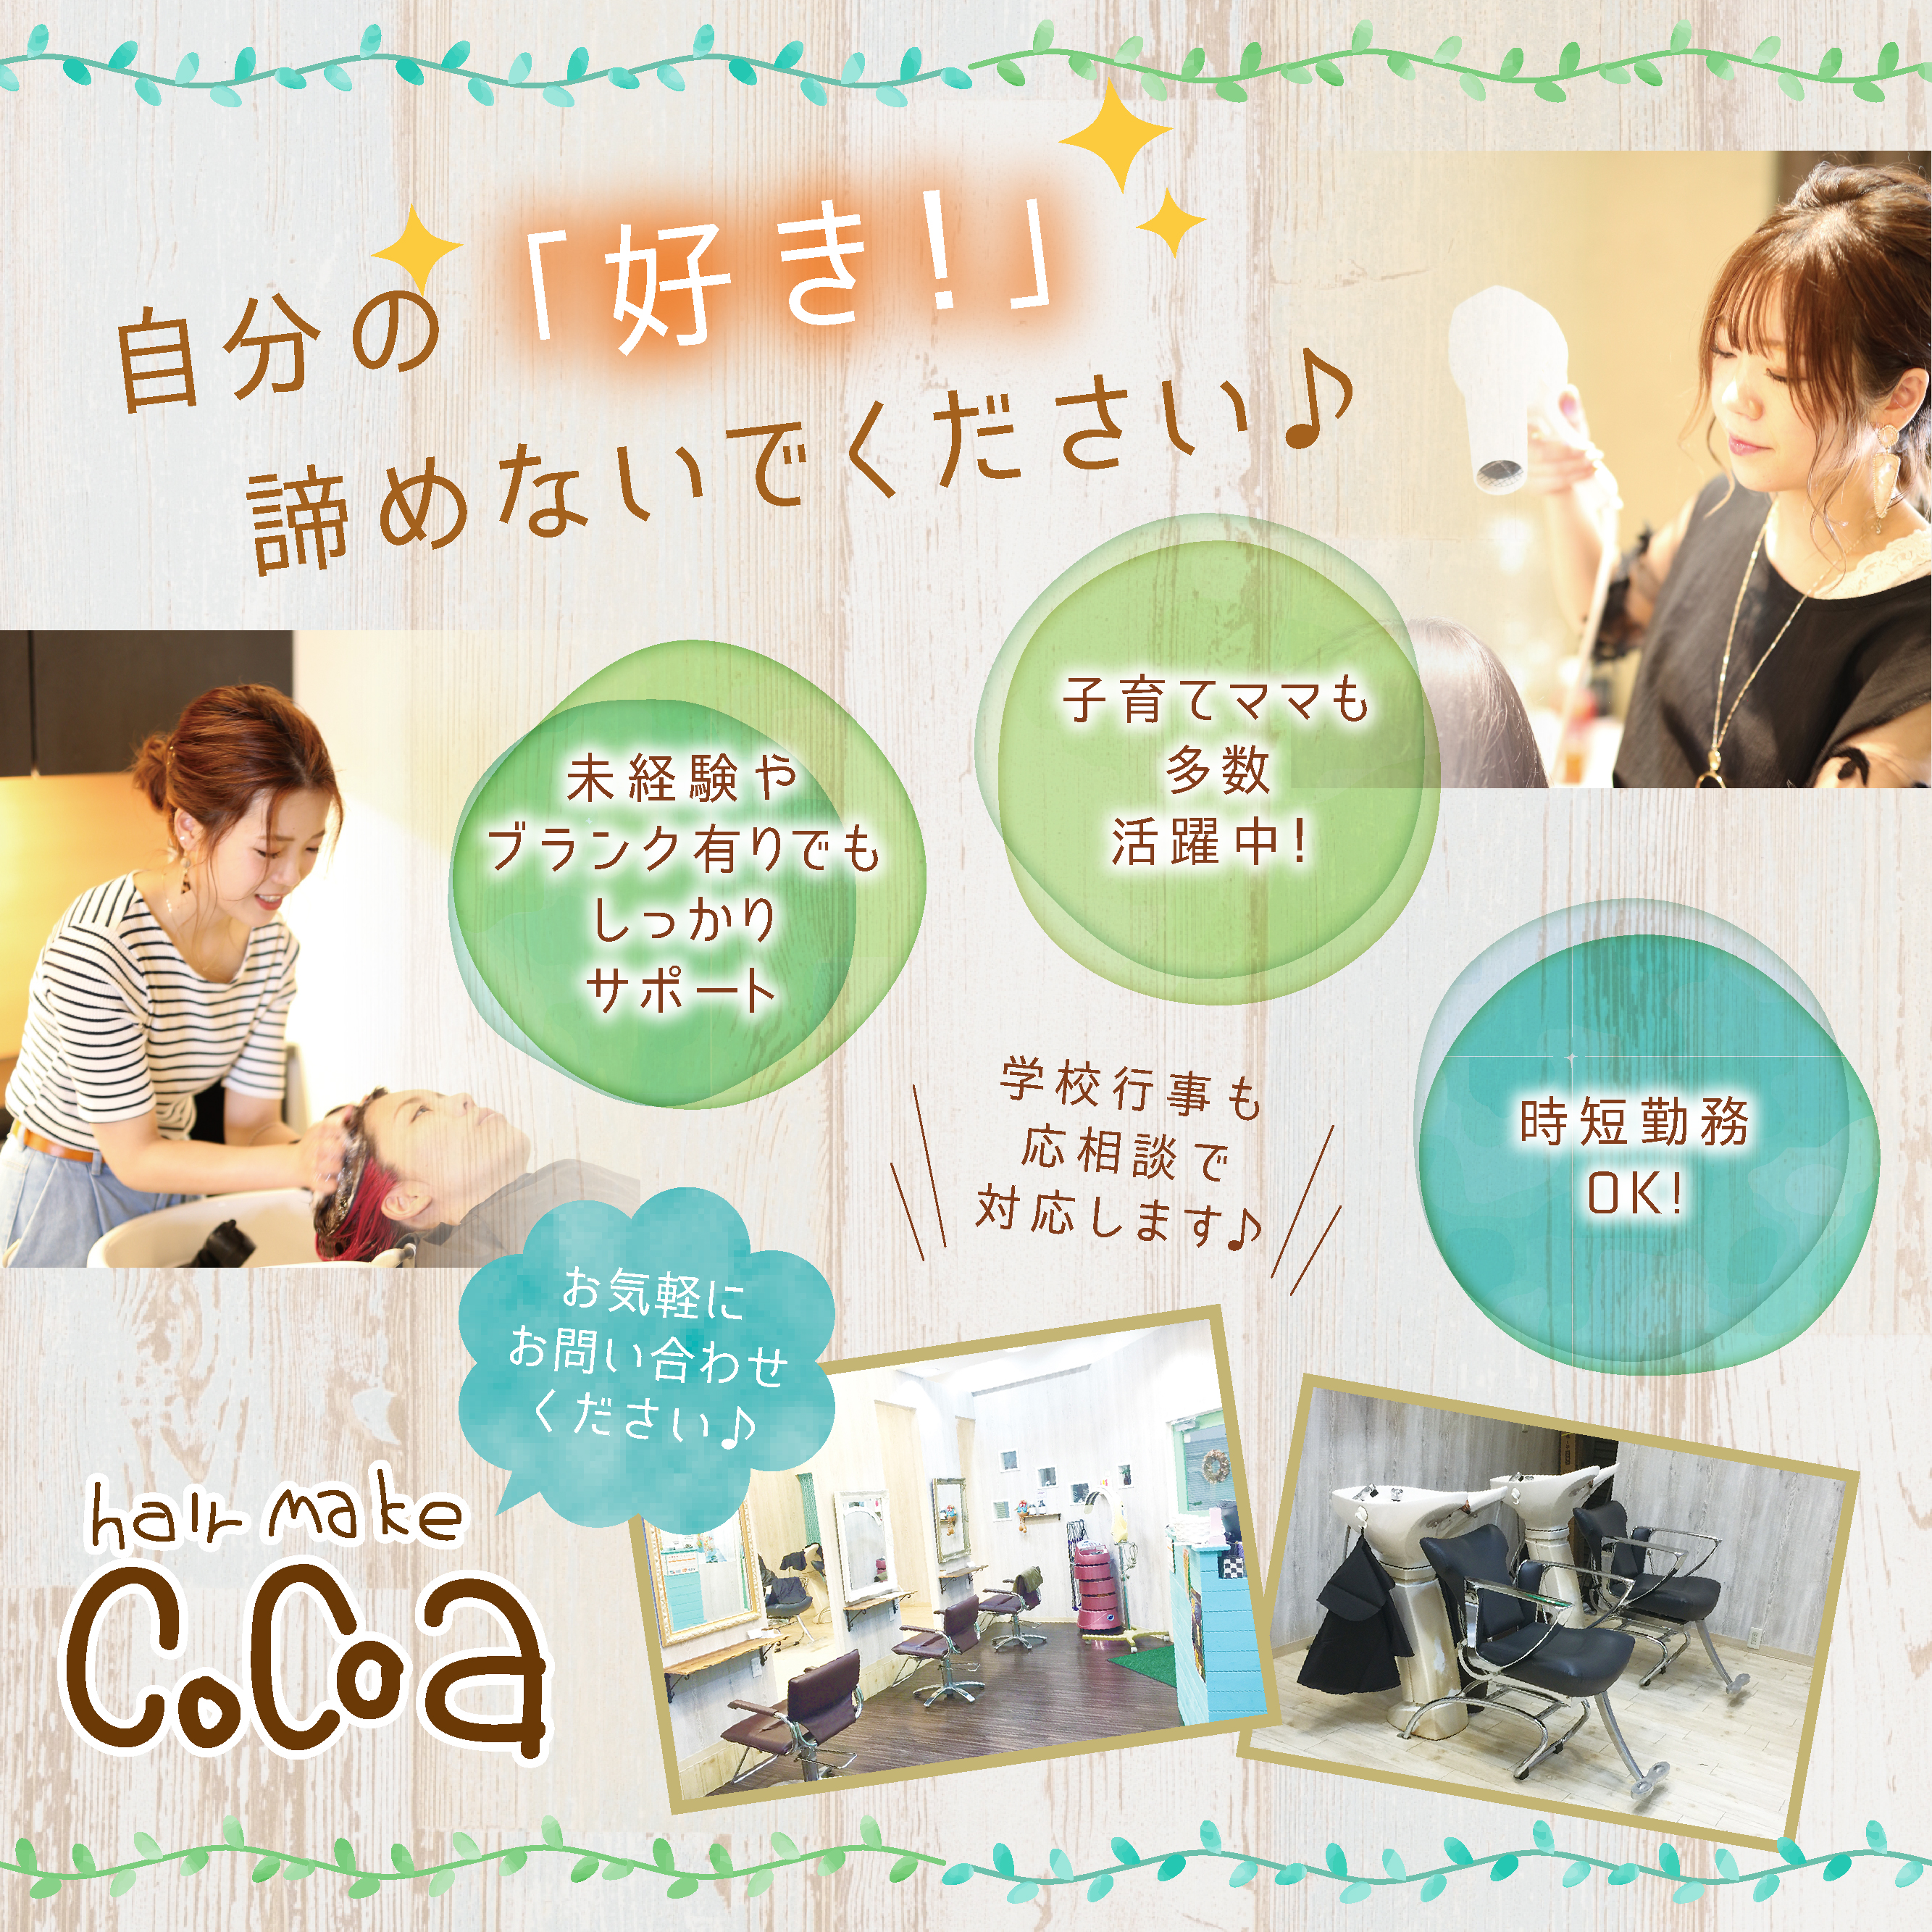 Hair Make COCOA【ヘアメイクココア】 求人情報